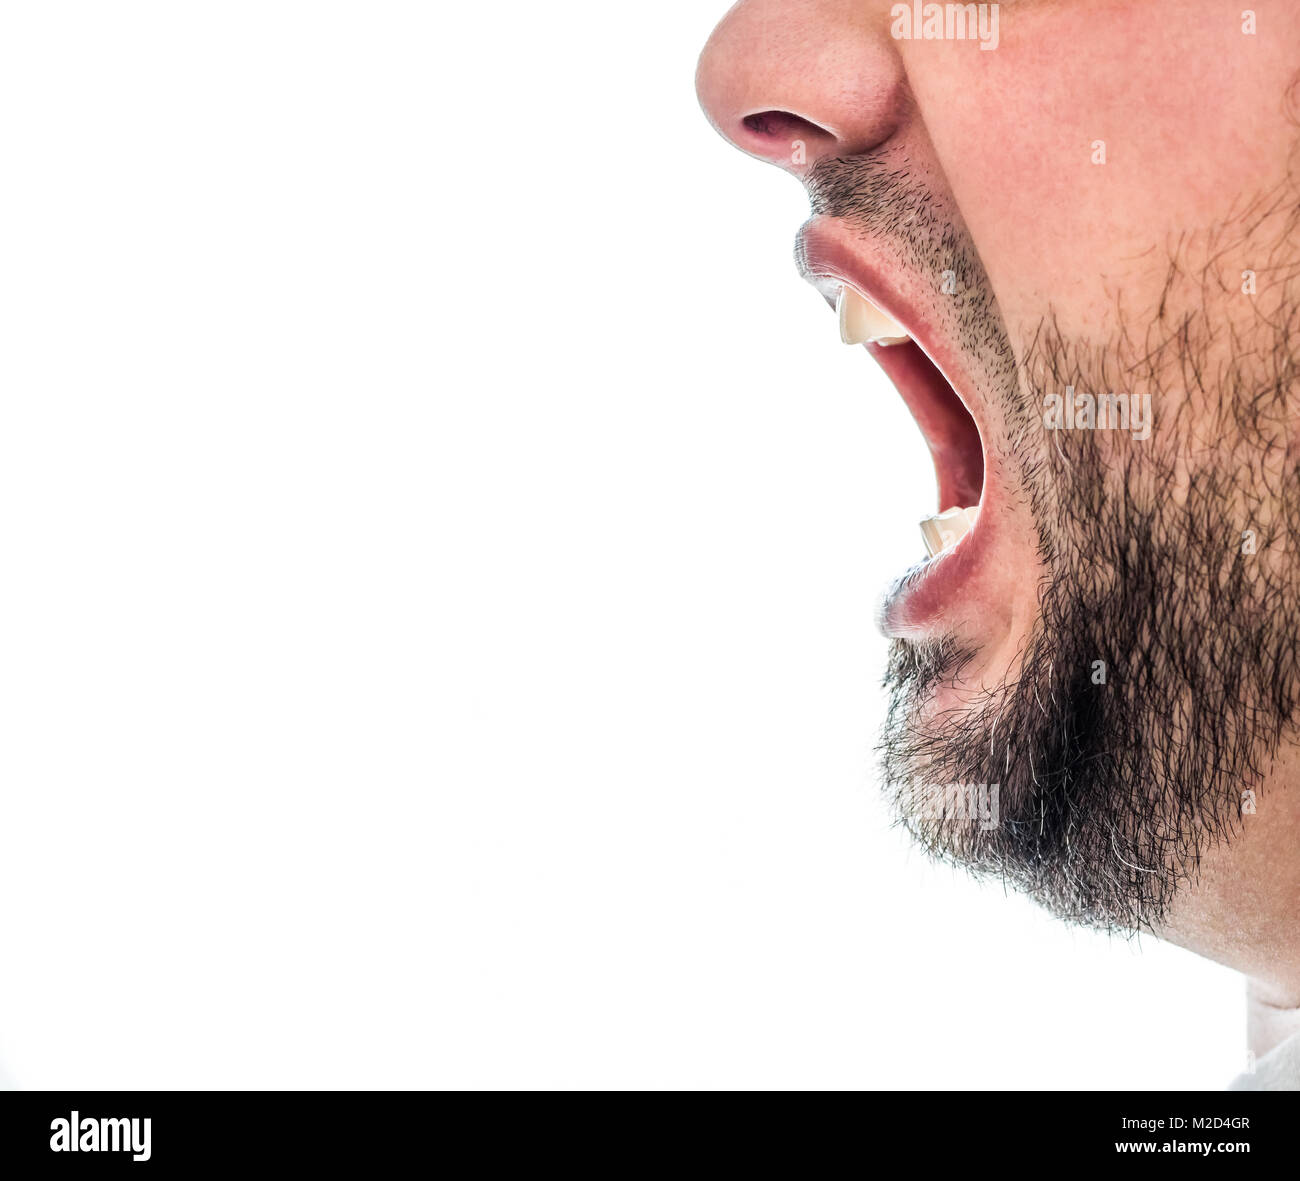 A mans face is seen in the image with his mouth wide open. He is positioned at the far right of the image with plenty - Stock Image